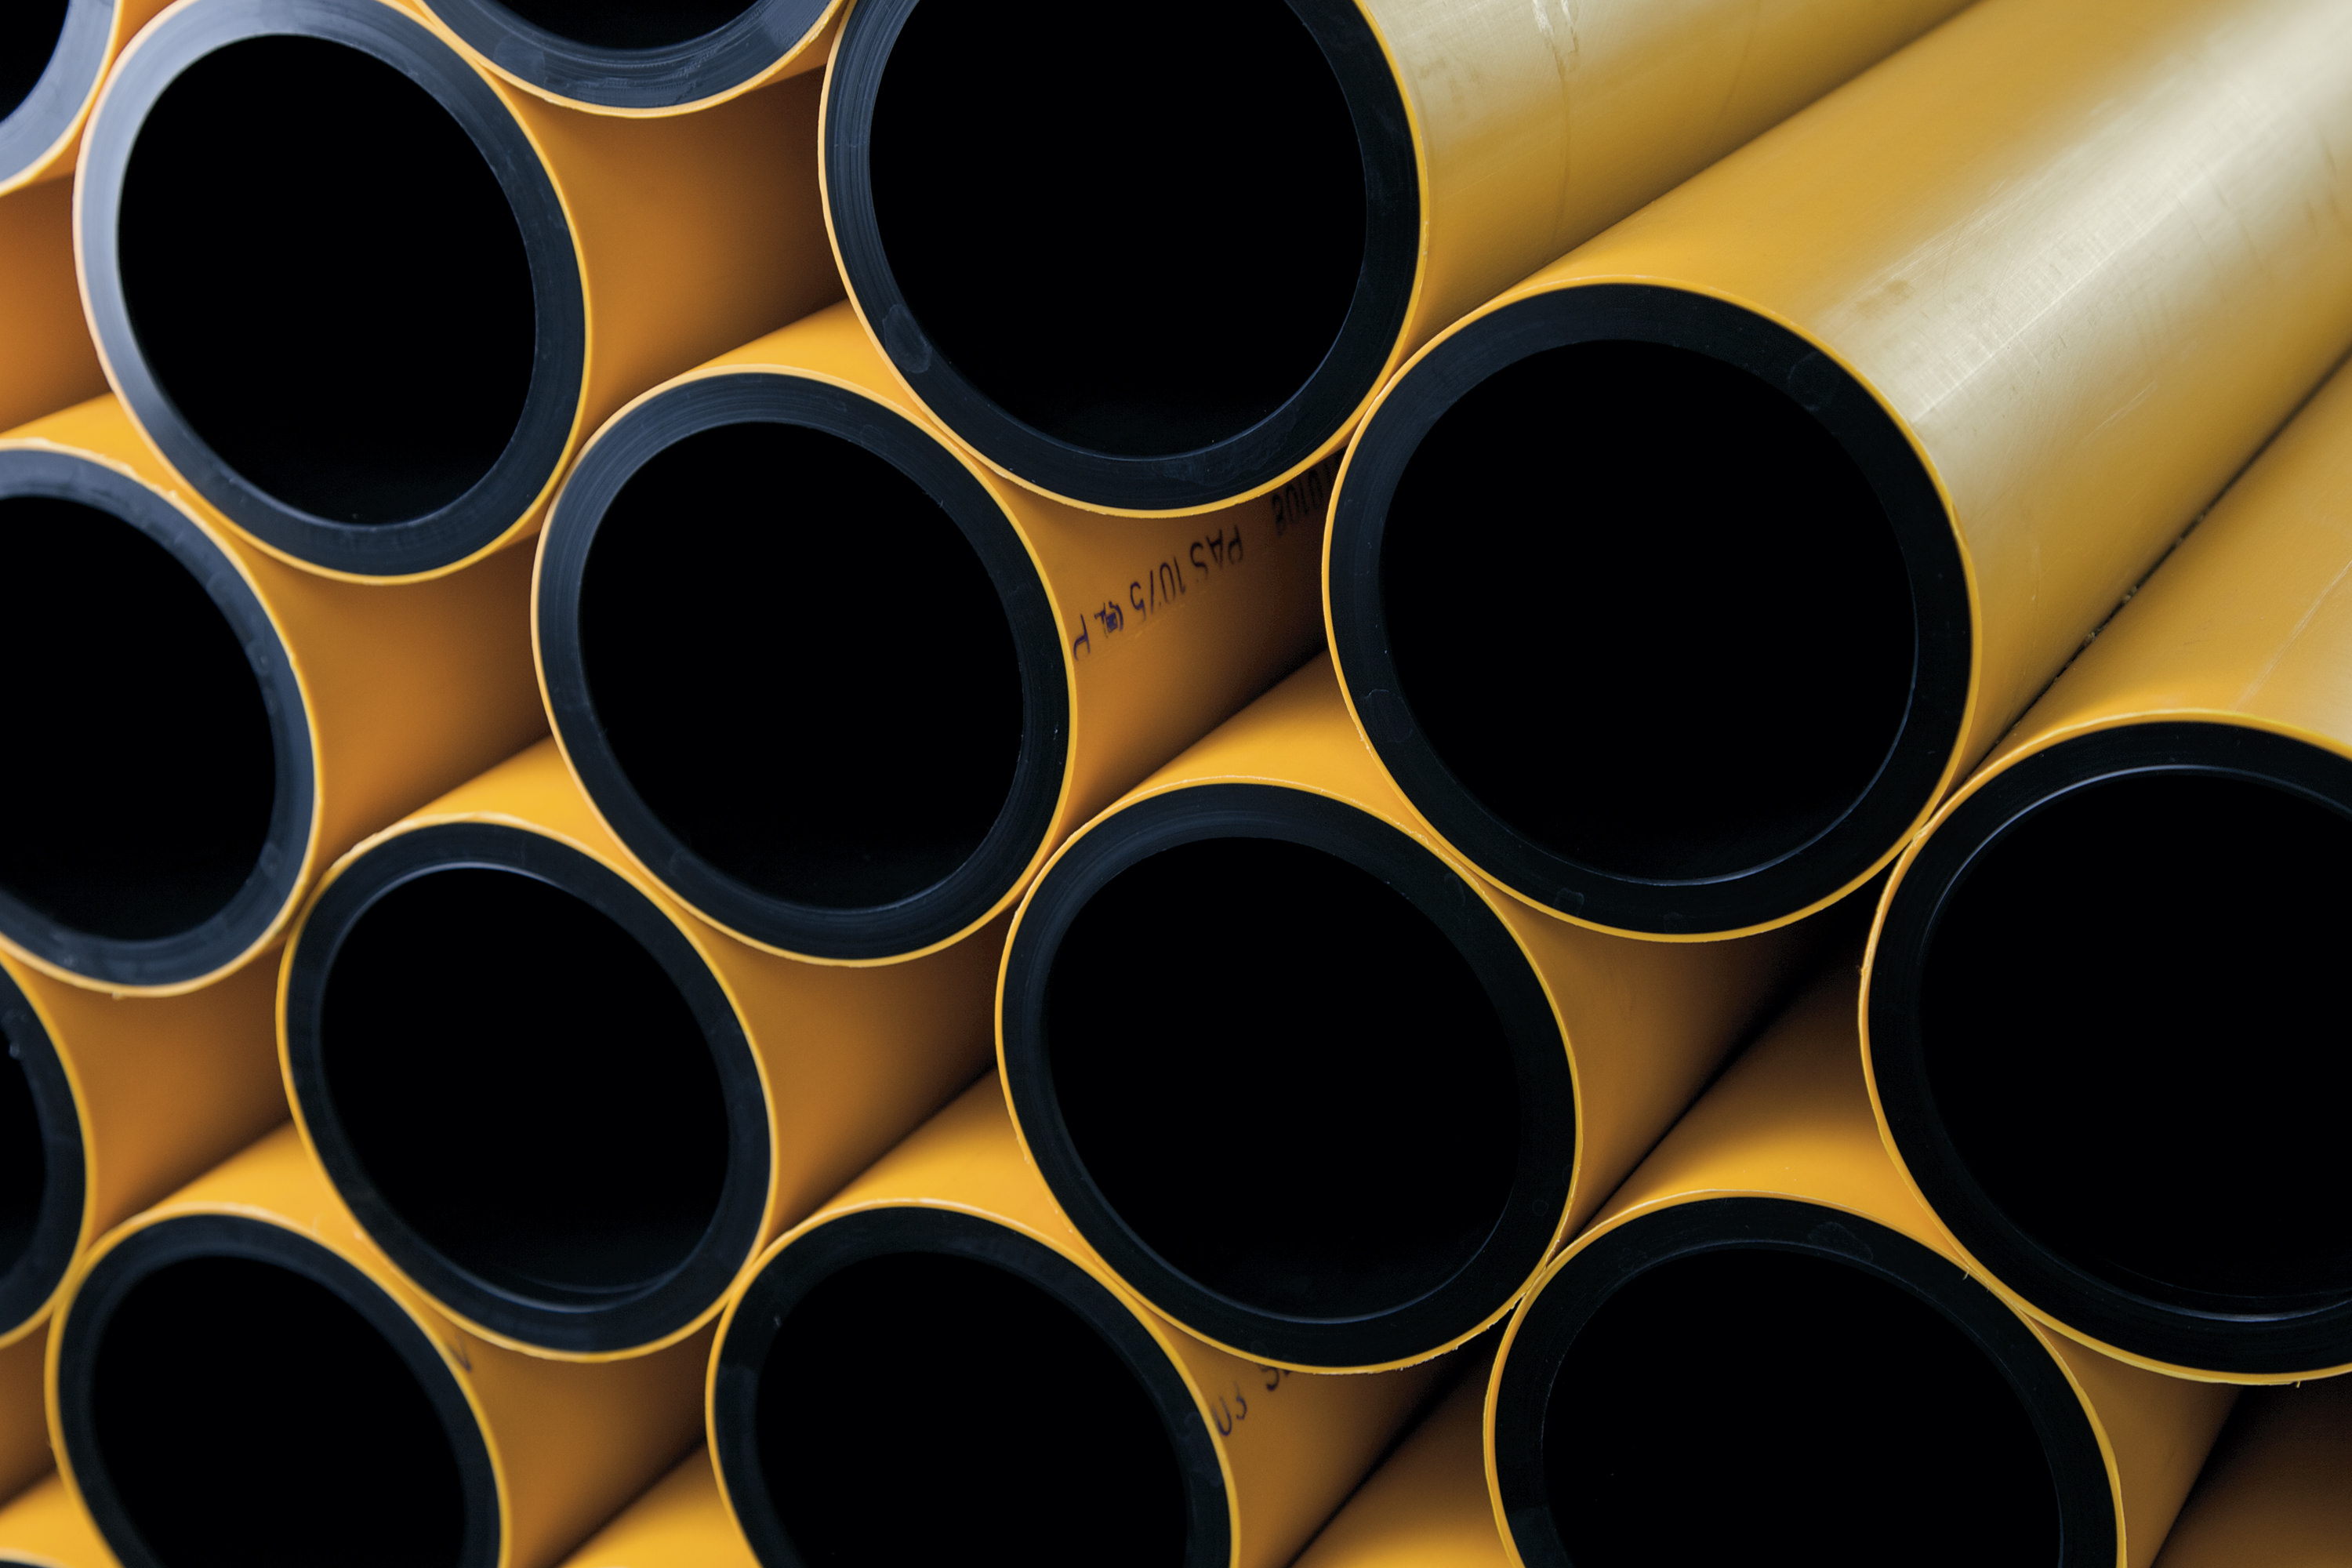 JANSEN PE 100 RC 9010 pressure pipe: co-extruded, double-layer pipe